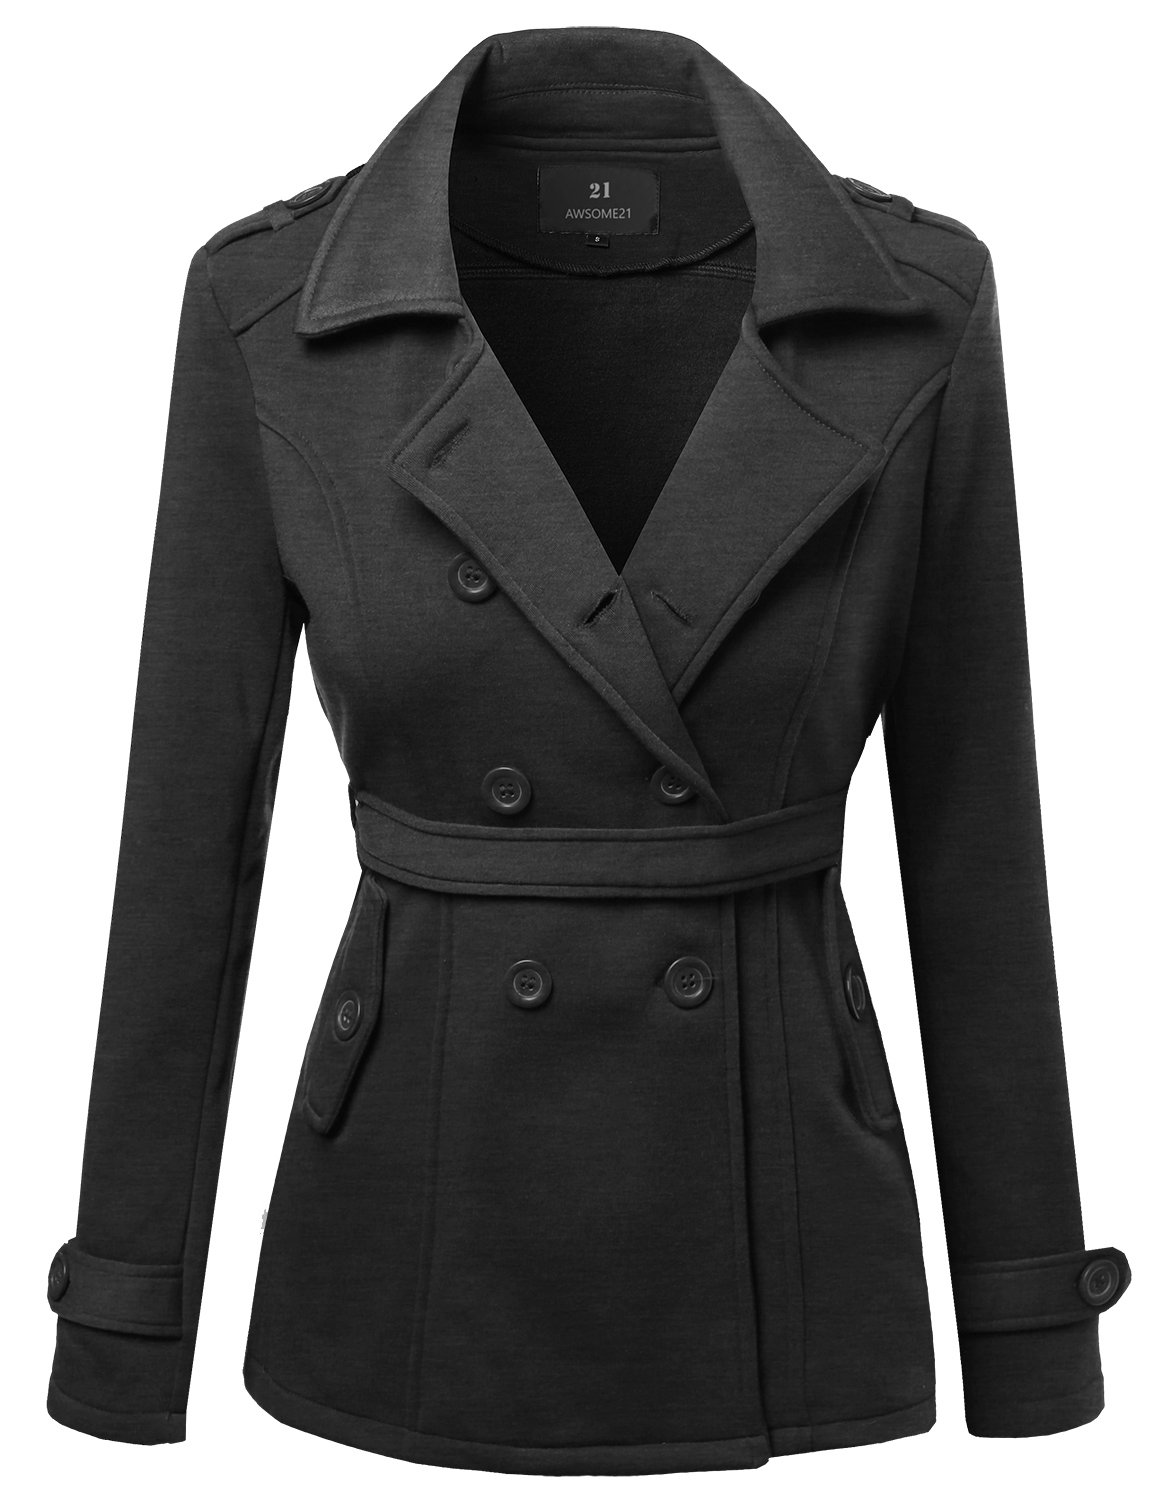 Awesome21 Beautiful Fit Cotton Blend Classic Double Breasted Trench Coat Charcoal Size S